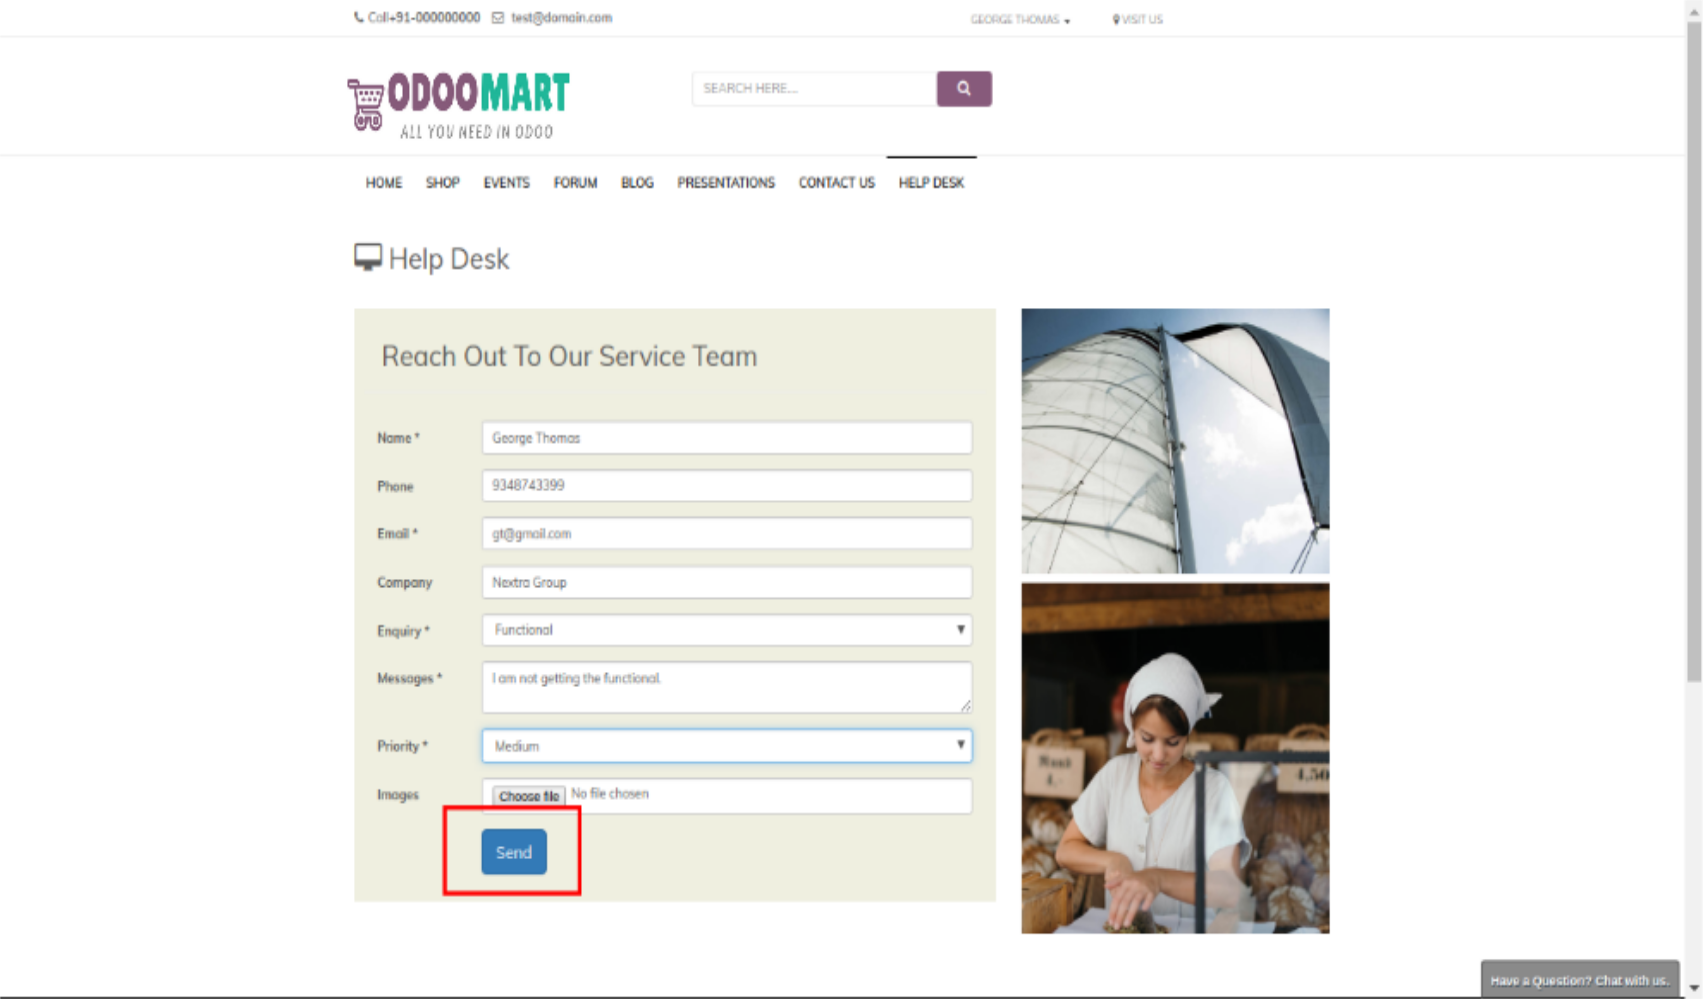 WEBSITE HELPDESK #ODOO